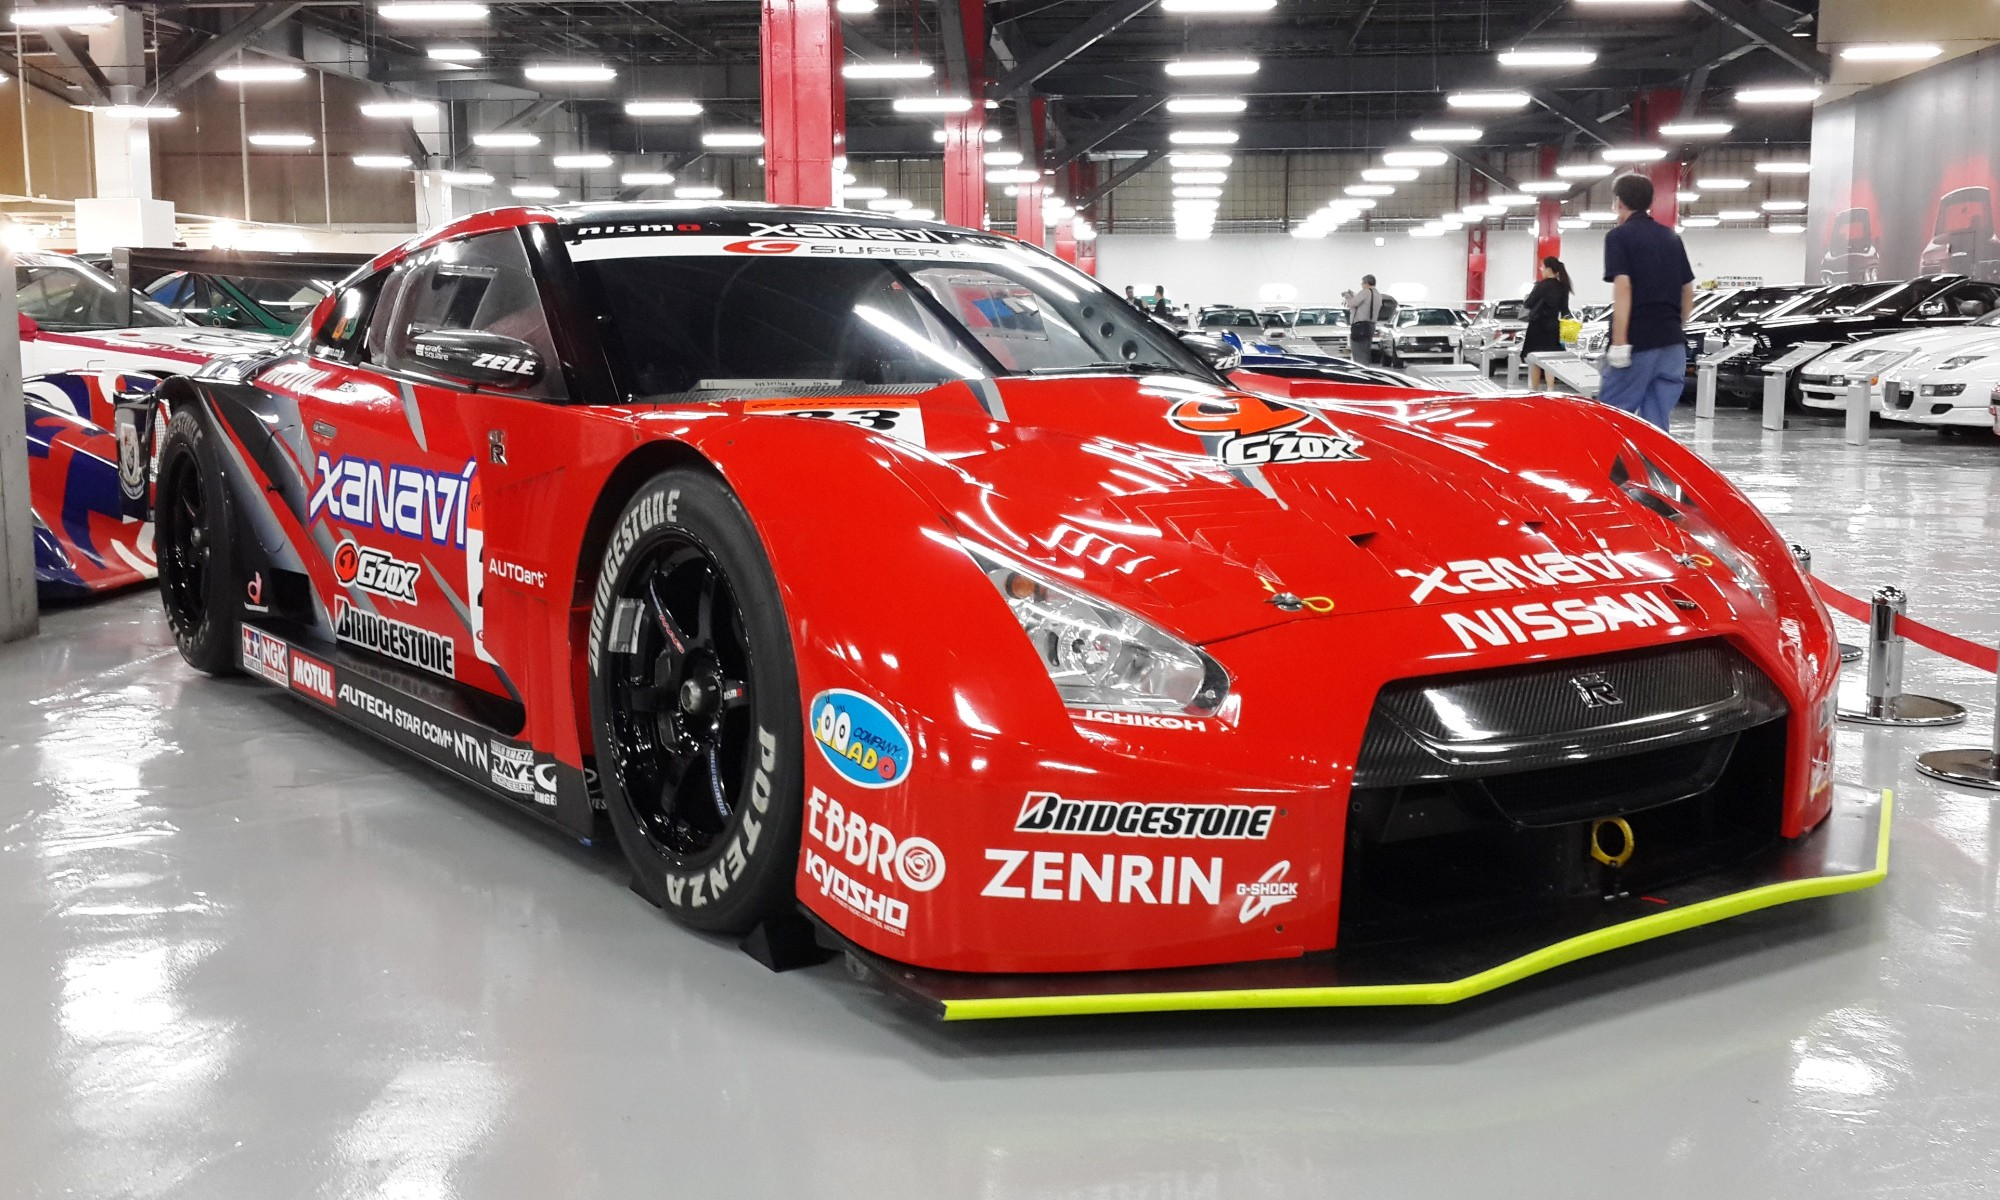 GTR35 racecar from the Japanese Super GT series